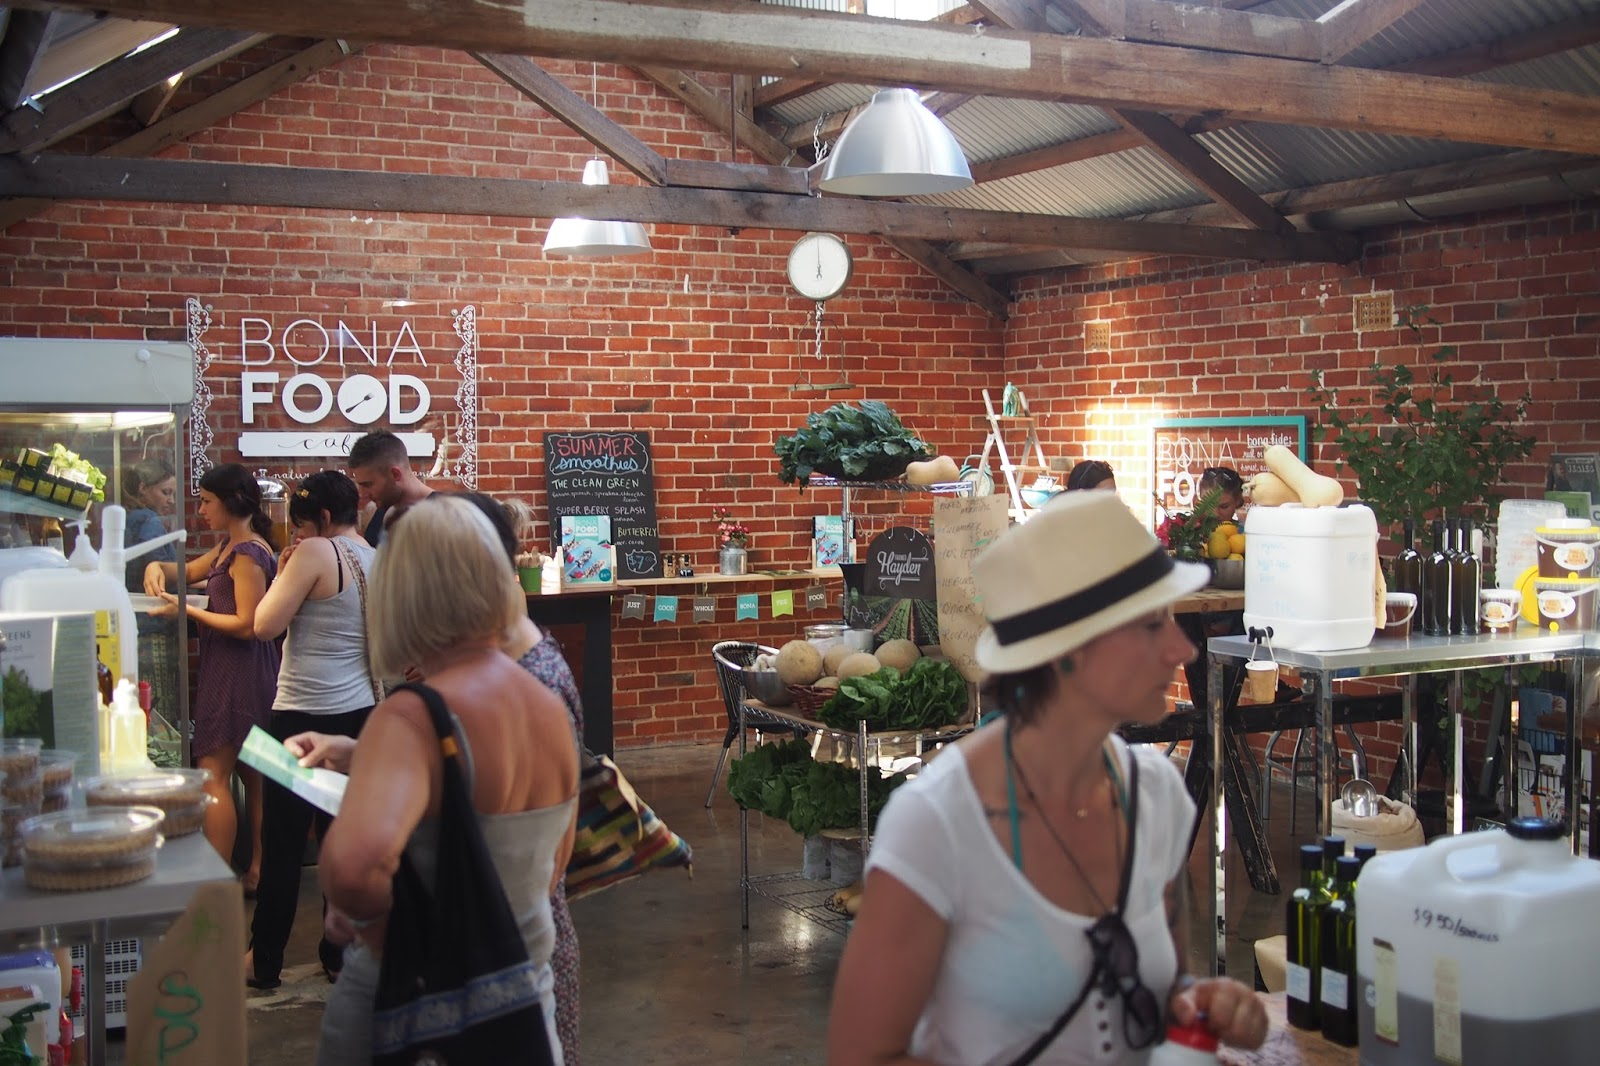 Adelaide, Market Shed On Holland, Farmers Market, Bona Food